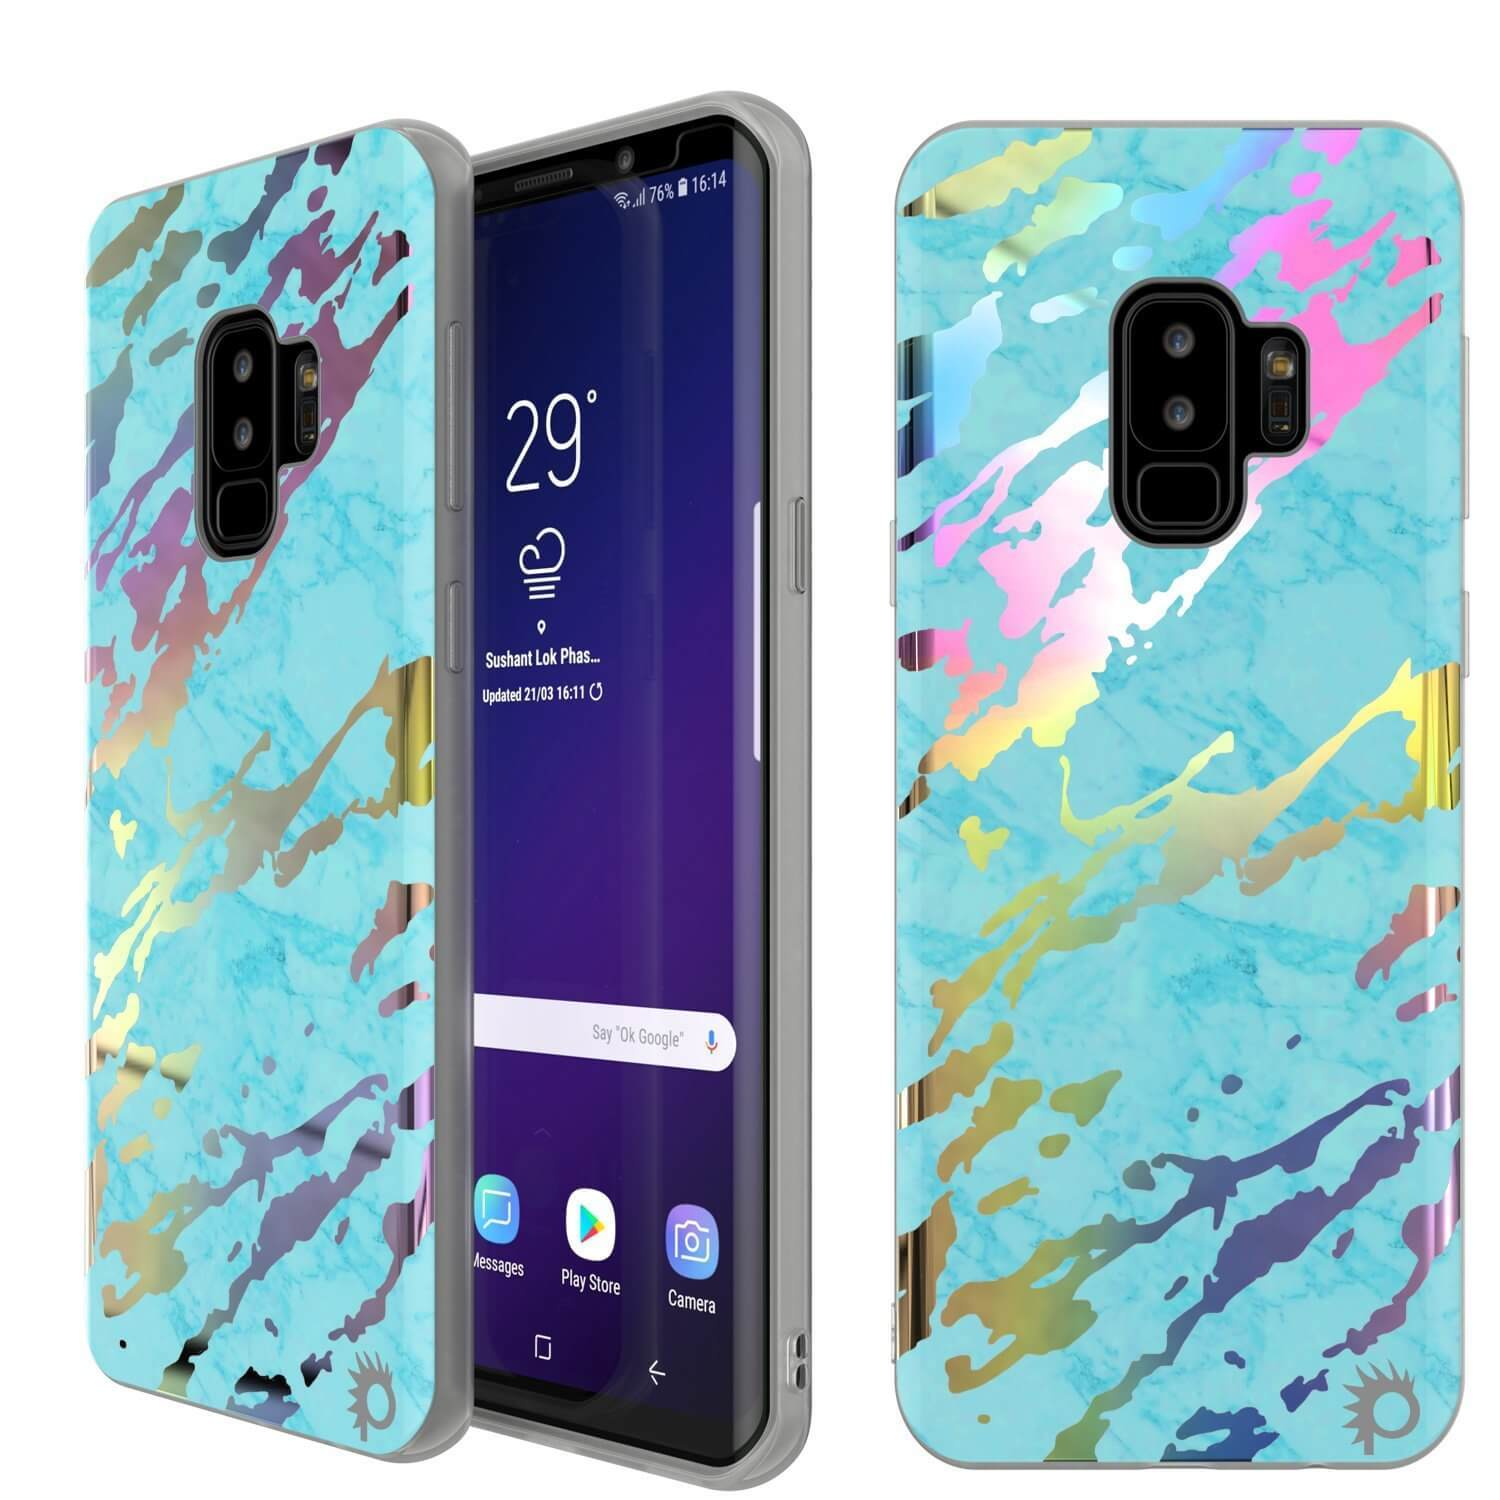 Punkcase Galaxy S9+ Marble Case, Protective Full Body Cover W/PunkShield Screen Protector (Teal Onyx)